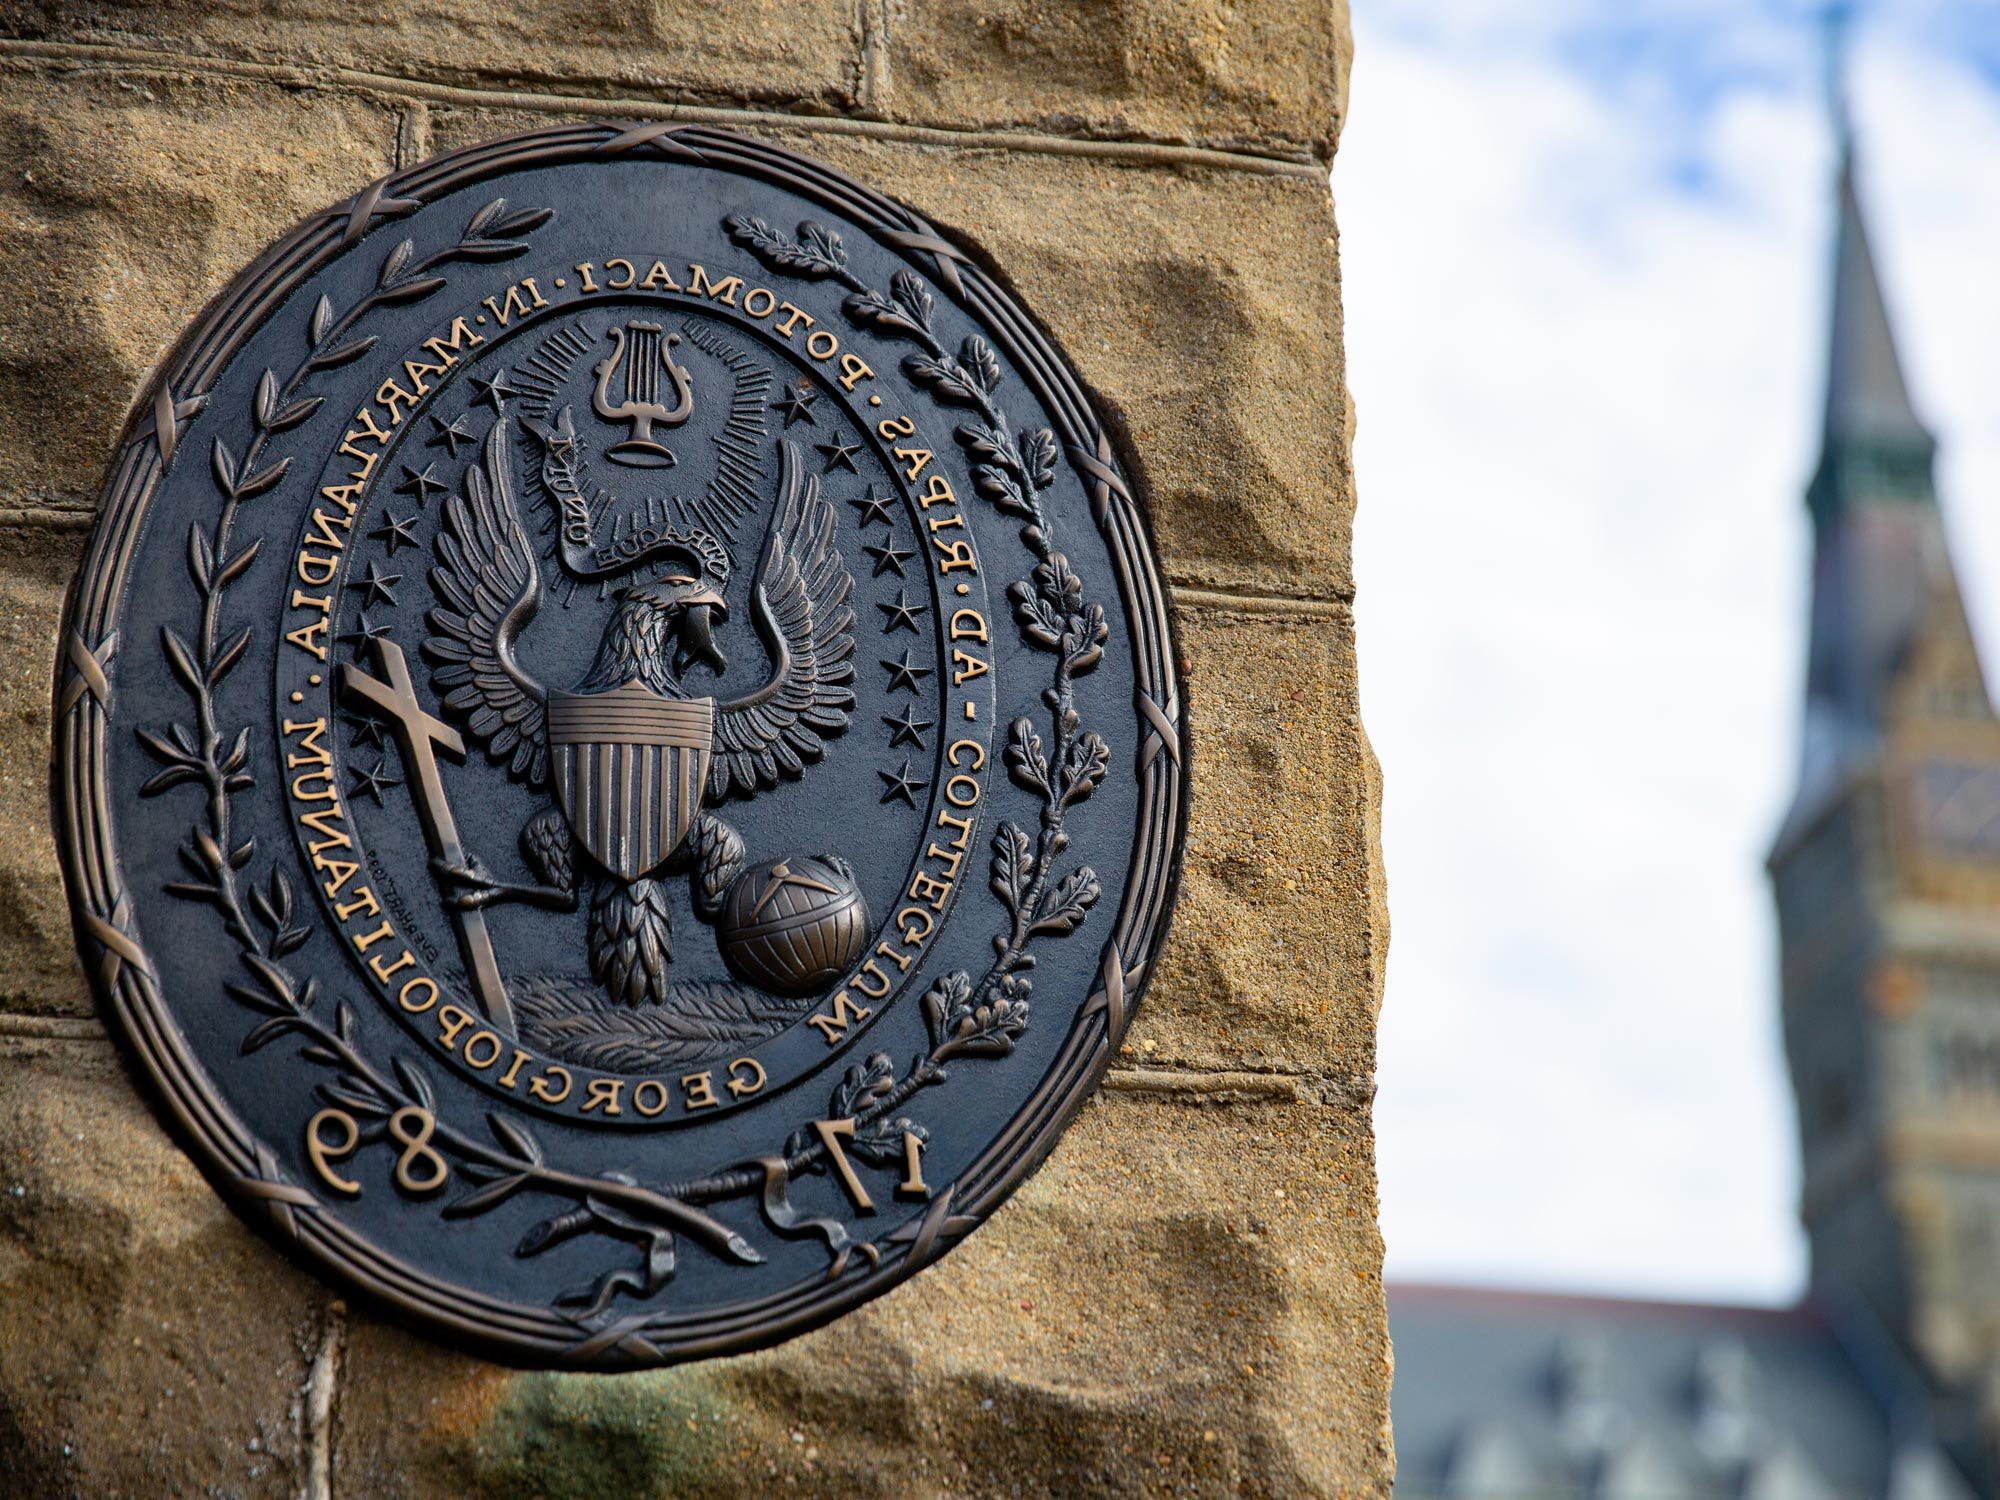 The Georgetown seal on the front gates 的 campus